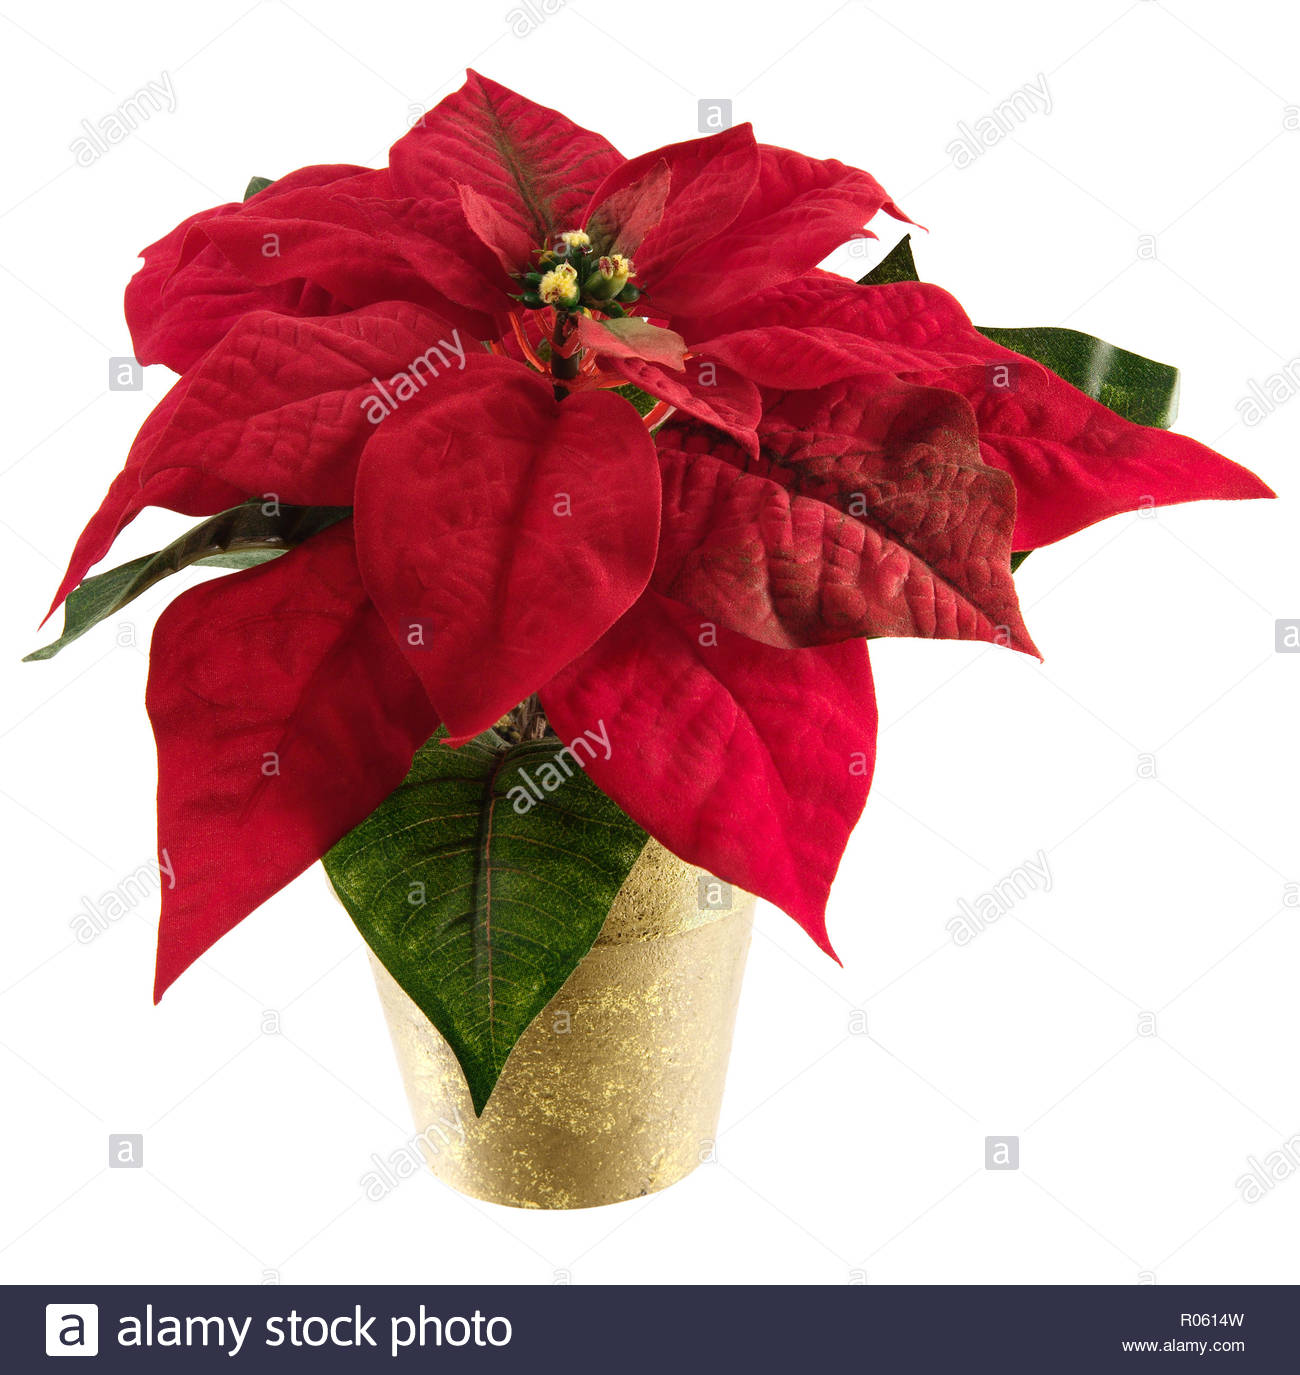 Silk Floral Poinsettia For Holiday And Christmas Themes Stock Photo